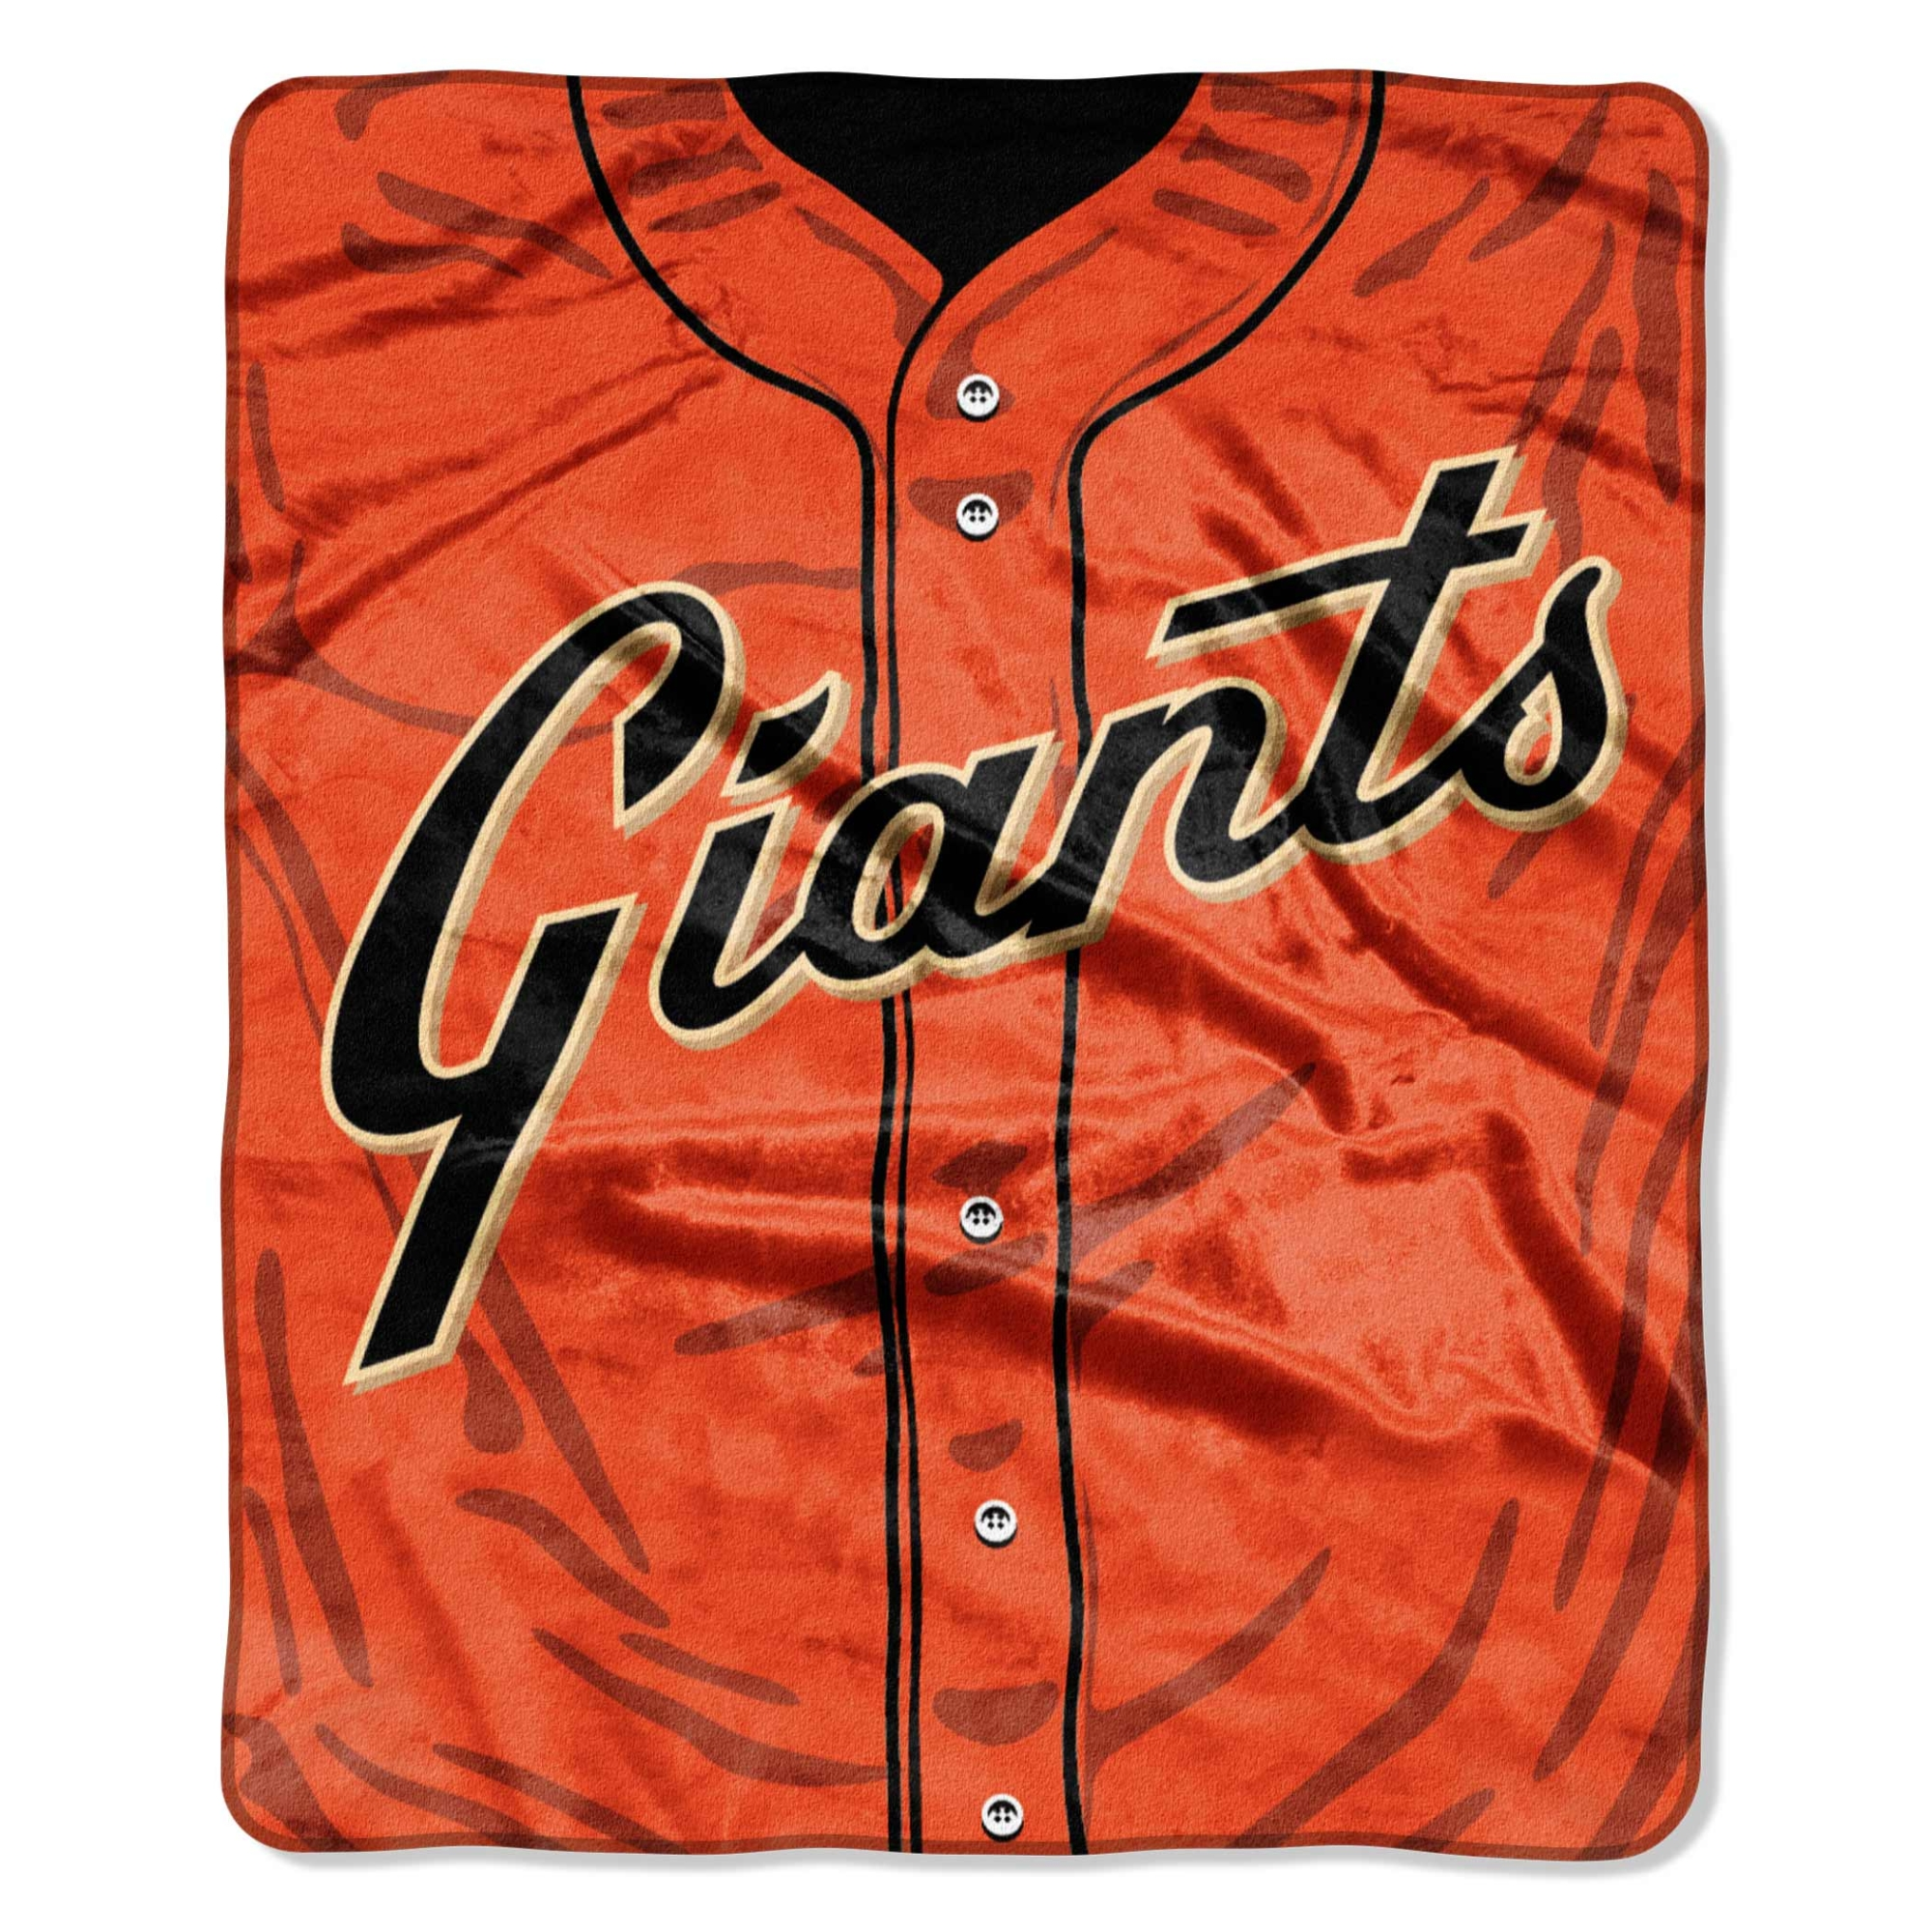 "San Francisco Giants 50"" x 60"" Plush Jersey Blanket - No Size"